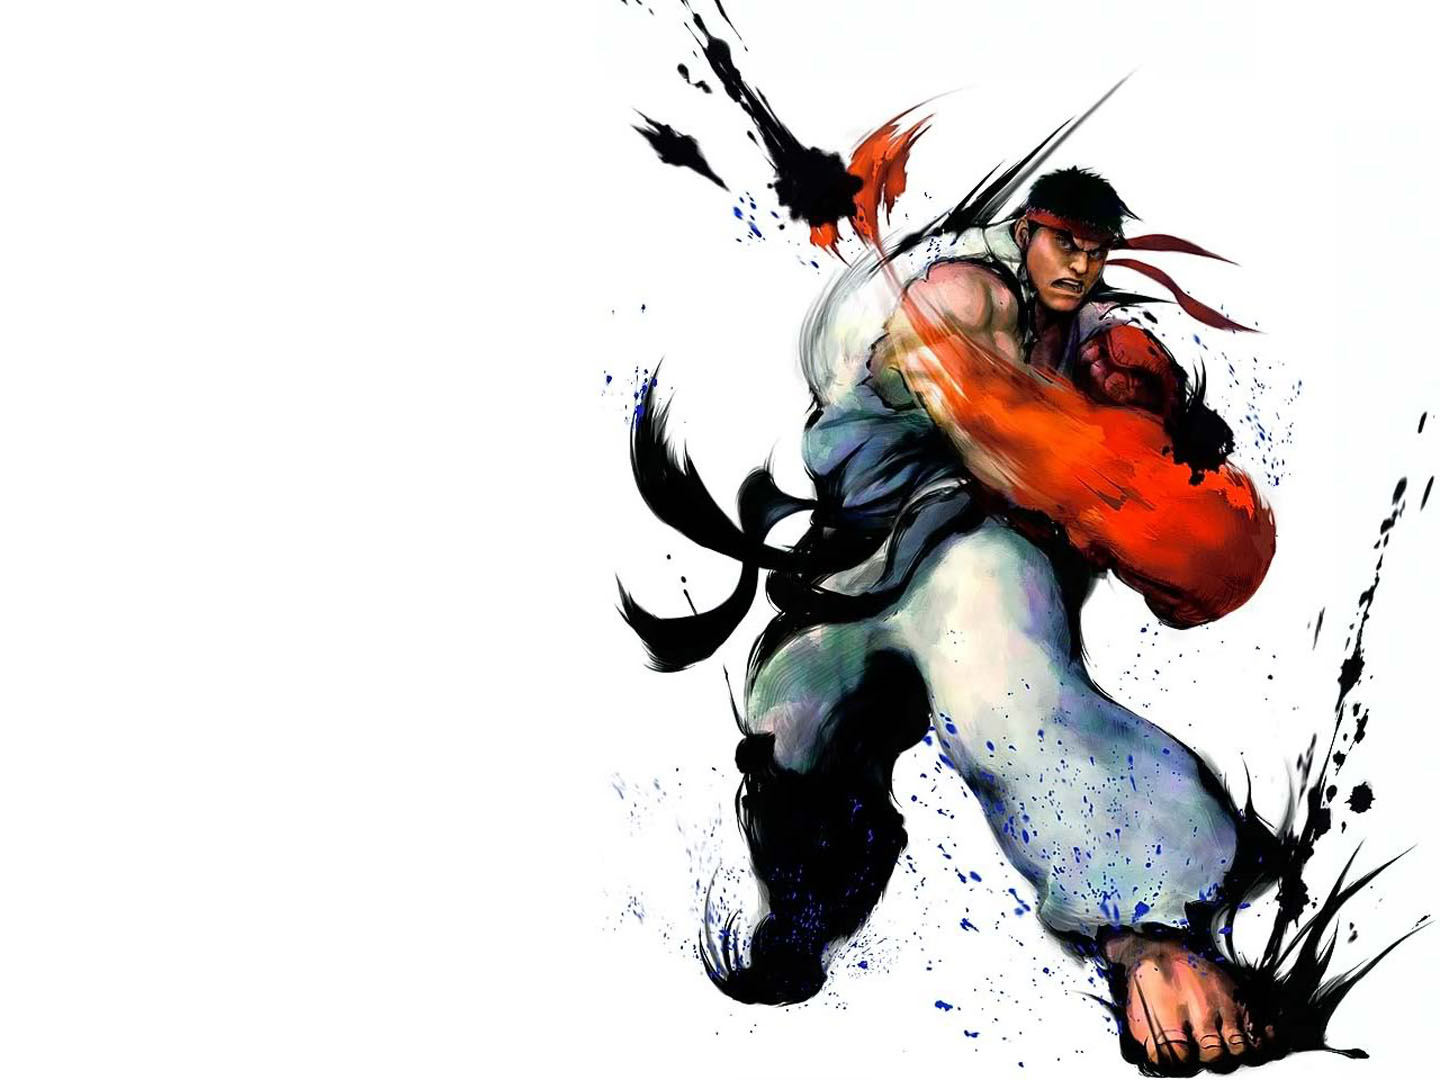 Free Download Ryu Street Fighter Wallpaper Street Fighter Ryu